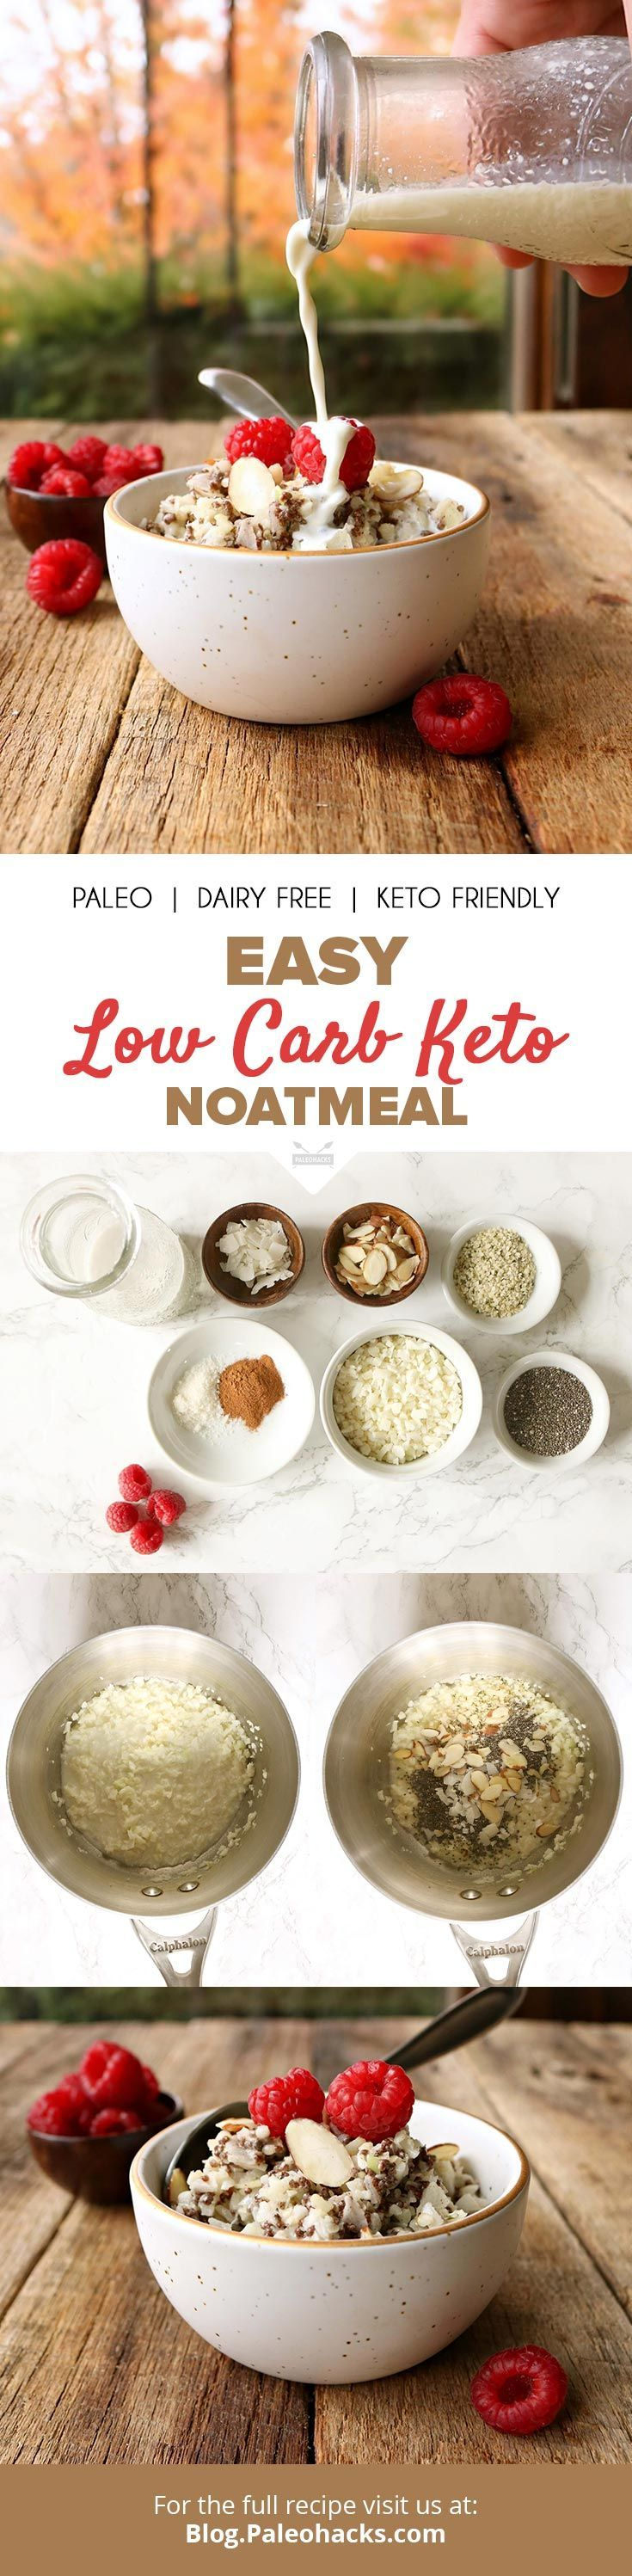 Cauliflower rice simmers in rich coconut milk with chia and hemp seeds for a bowl of warm, cozy and keto-friendly oatmeal that satisfies. Get the full recipe here: http://paleo.co/ketonoatmeal